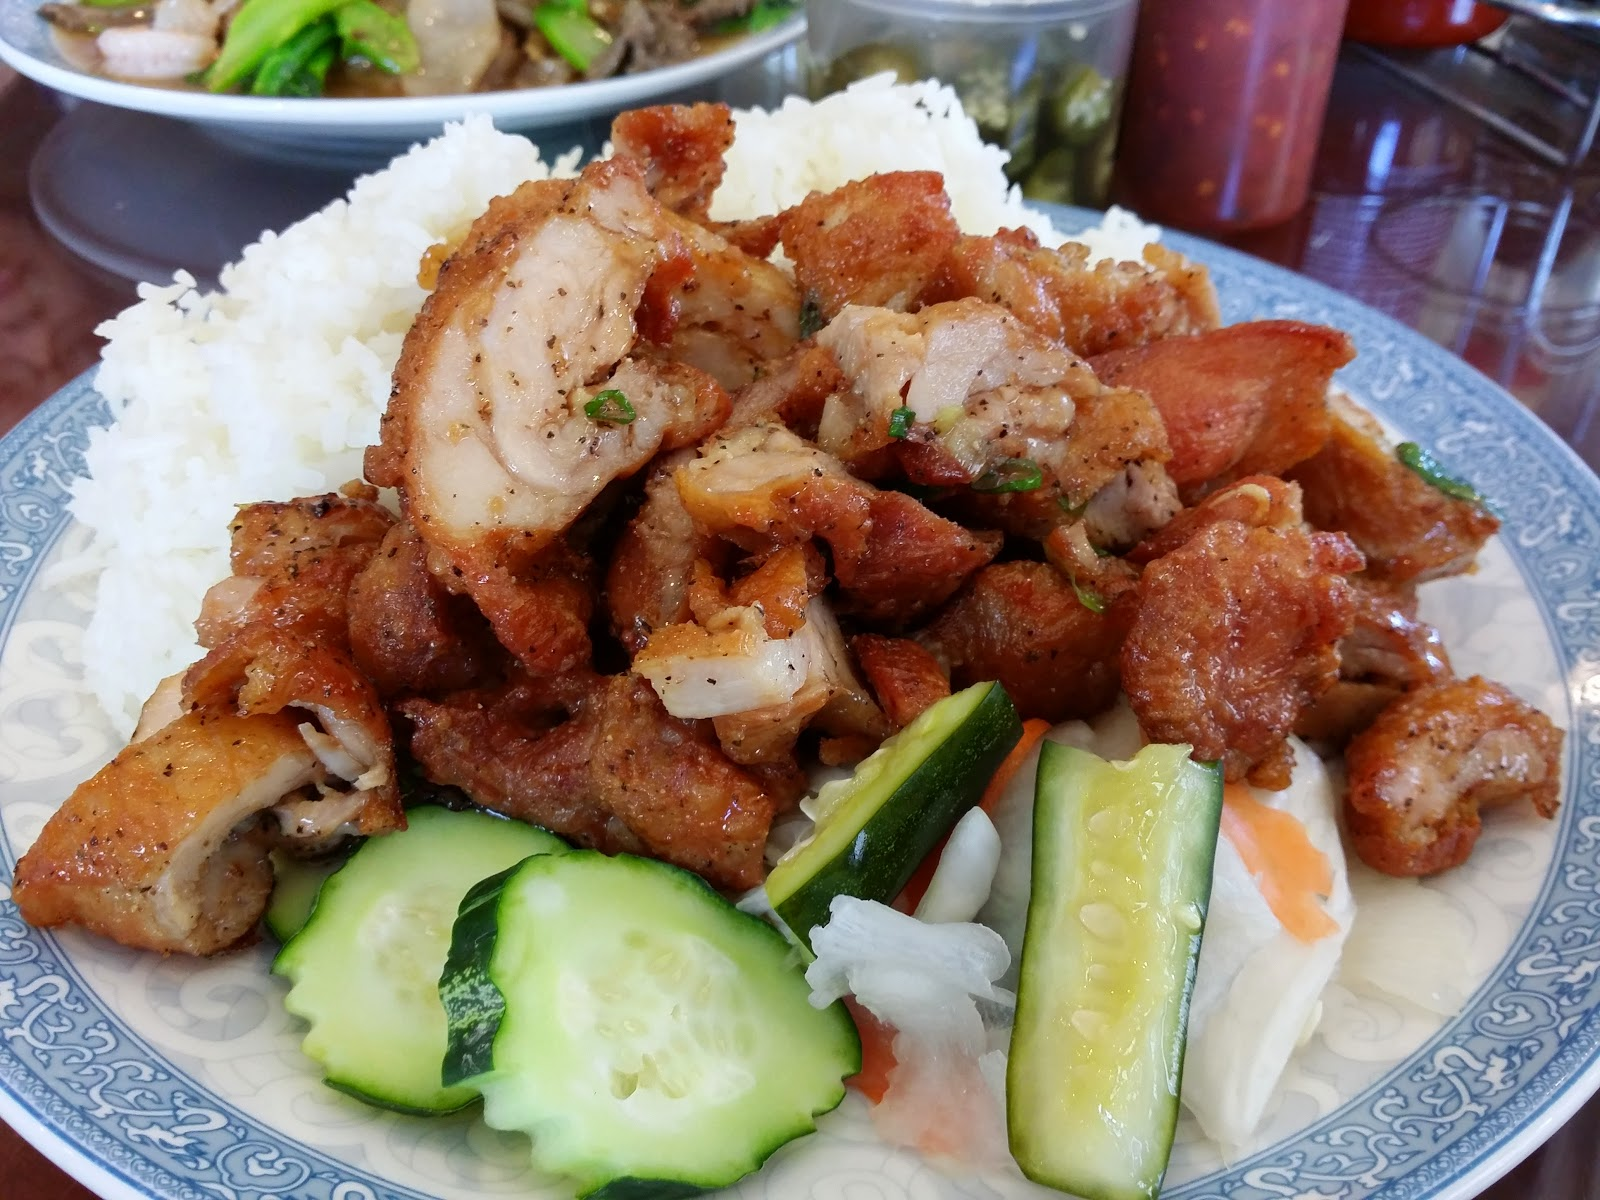 http://www.mami-eggroll.com/2014/02/great-cambodian-food-at-heng-lay.html